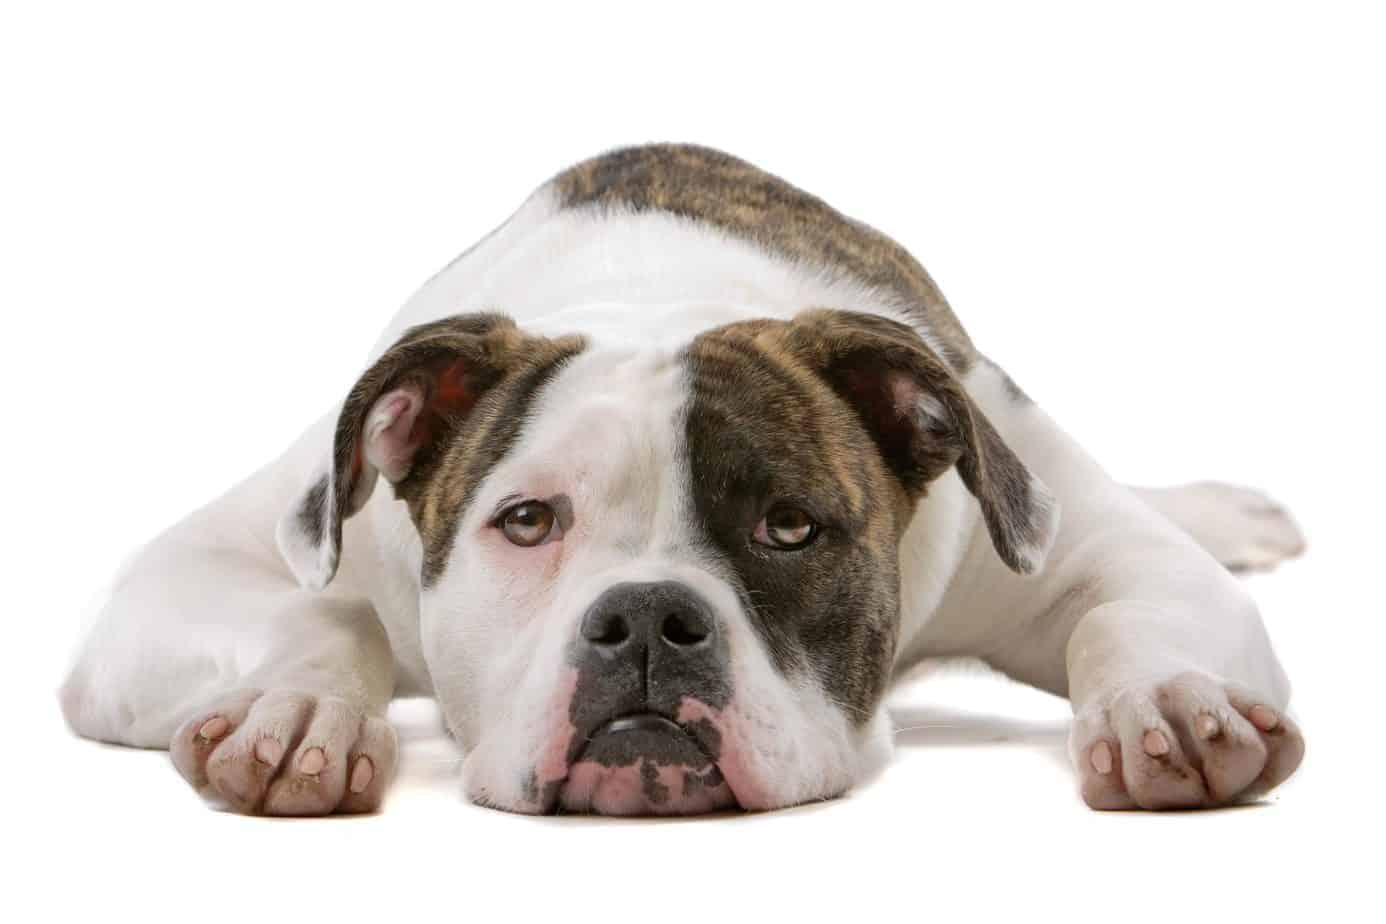 """American bulldog on white background. Both the American and English Bulldog have massive heads with a wrinkled face featuring a pushed-in nose and undershot jaw. The dogs have a small pelvis and a distinctive """"screw"""" tail. The major difference is American bulldogs have longer legs and are considered more athletic than their English cousins."""